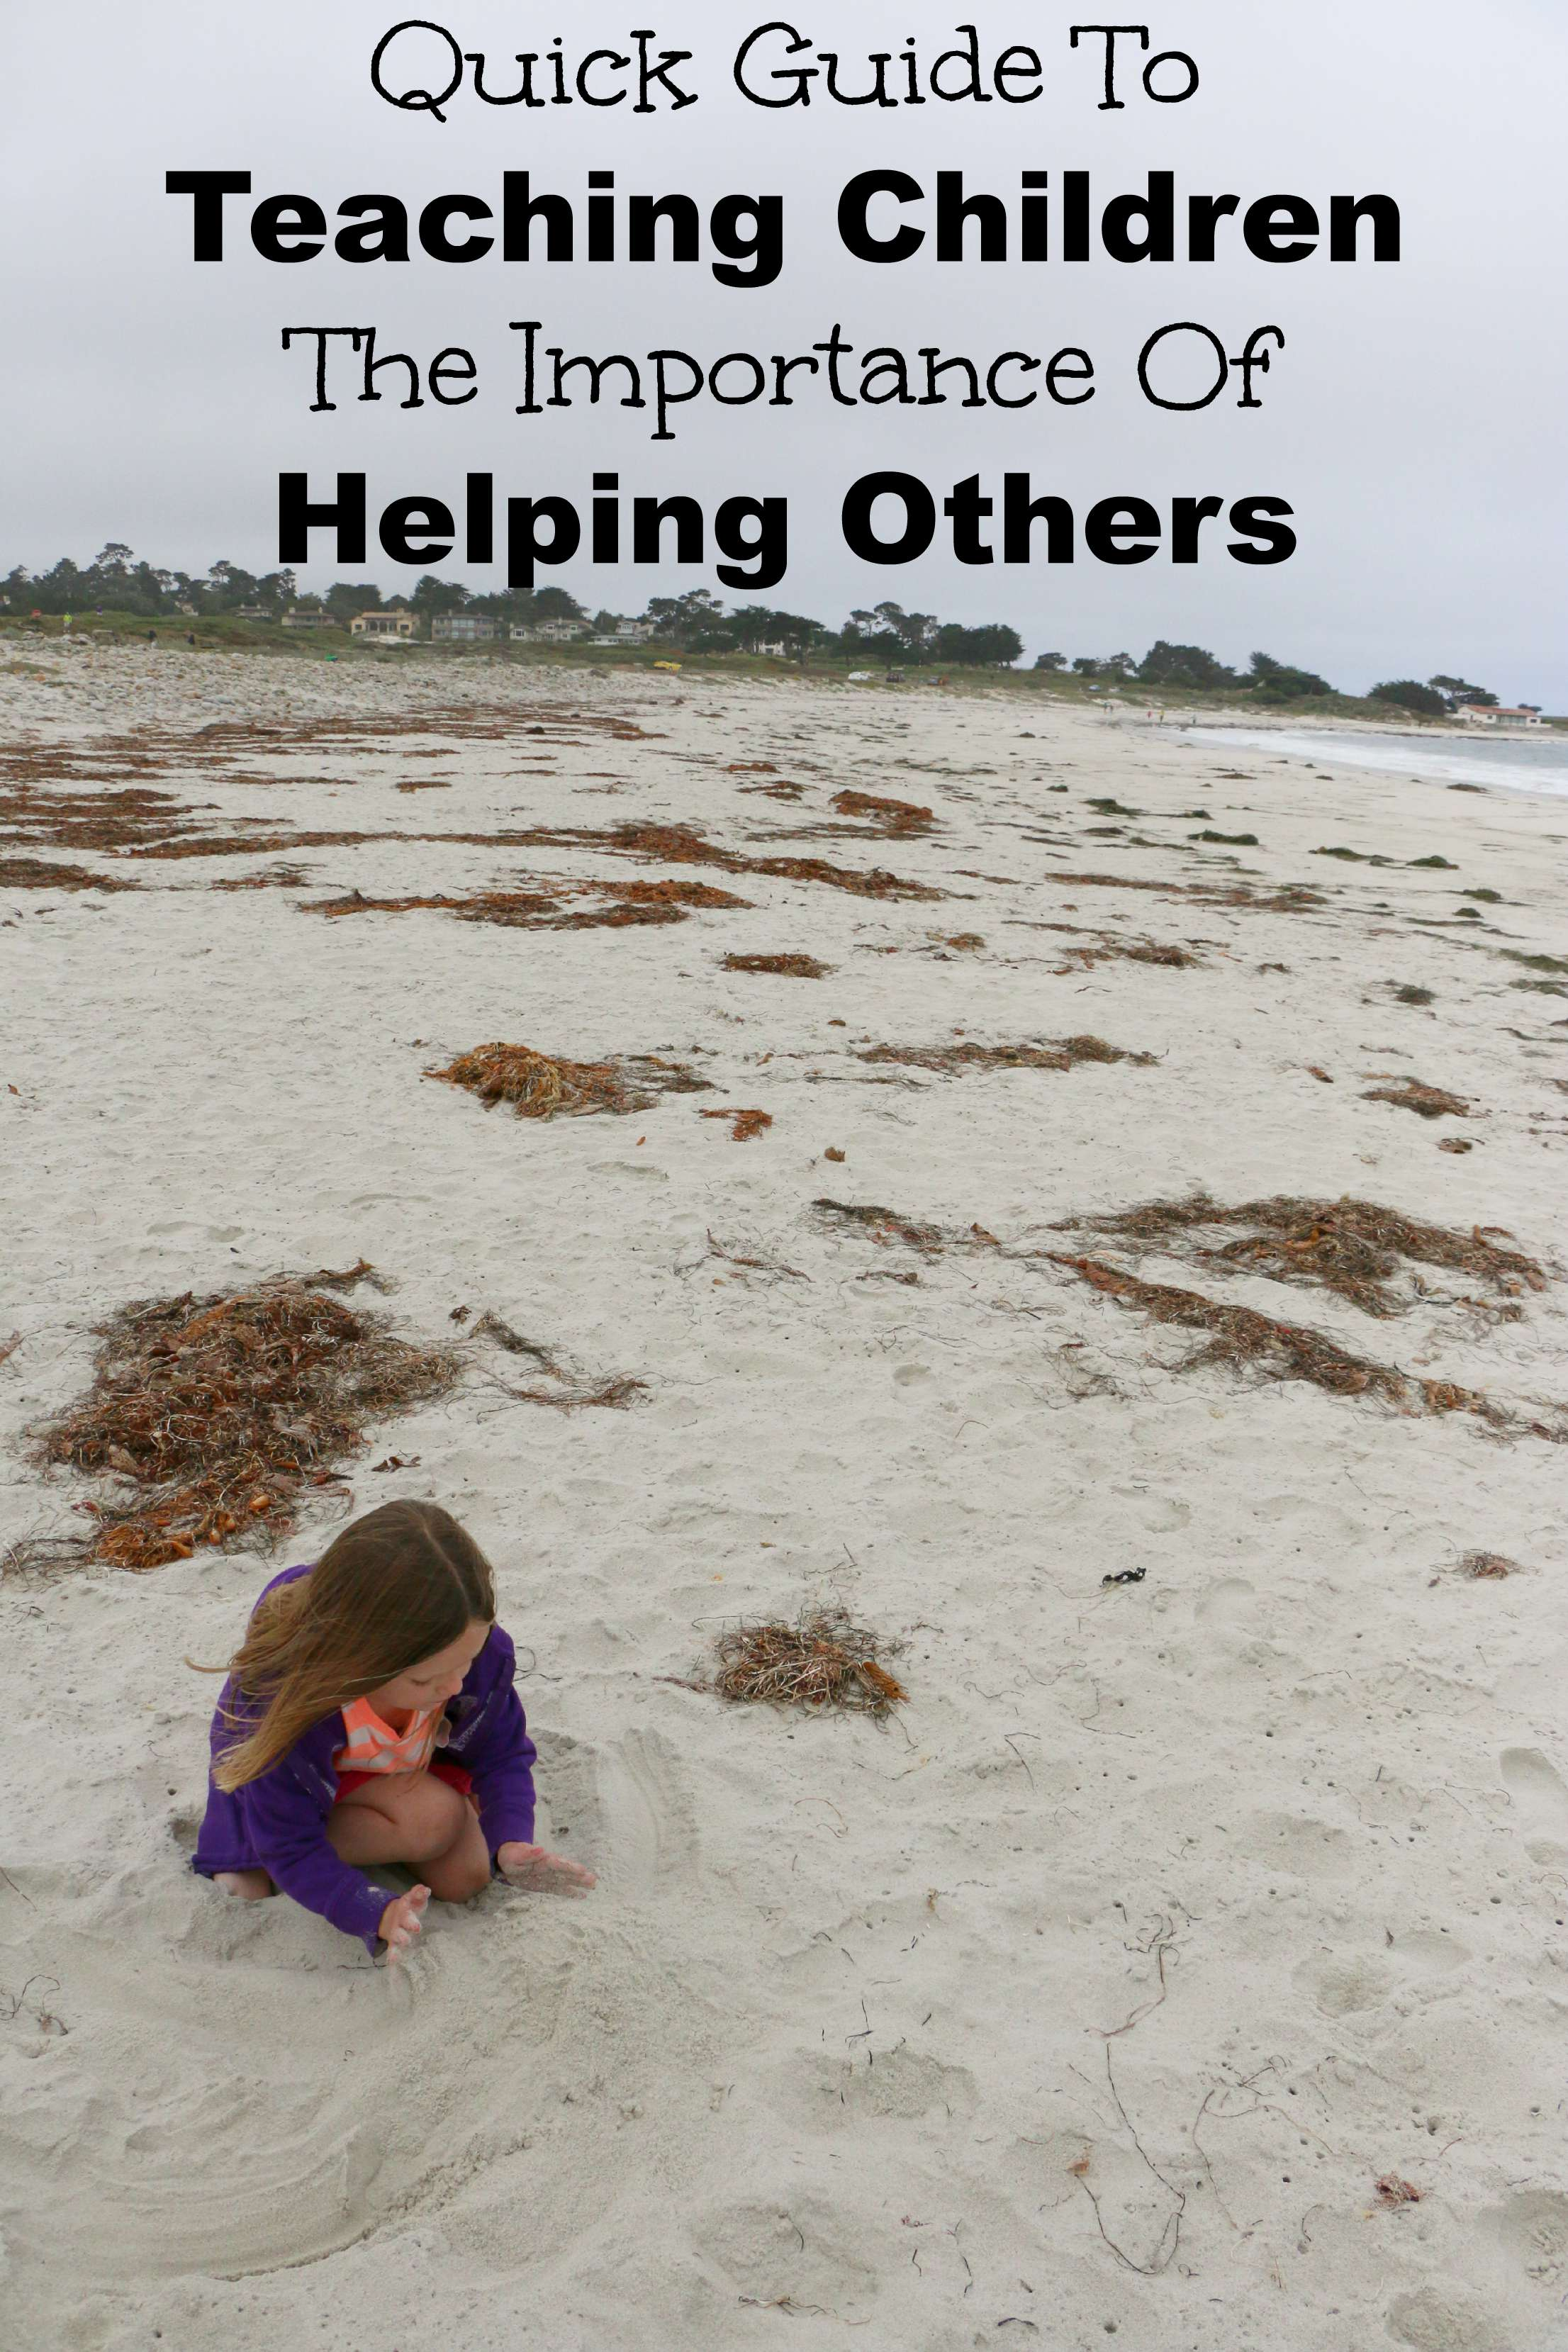 quick guide to teaching children the importance of helping others